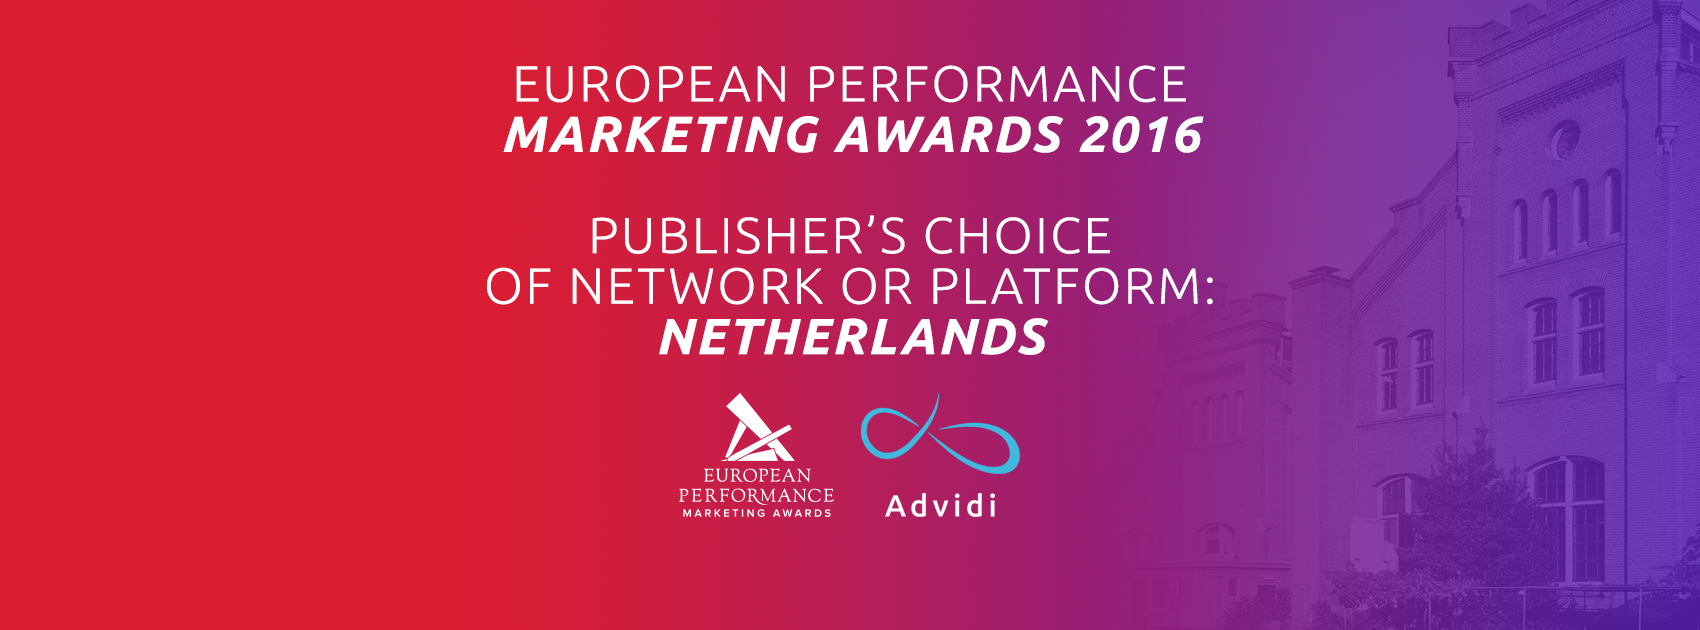 Publishers' Choice of Network or Platform